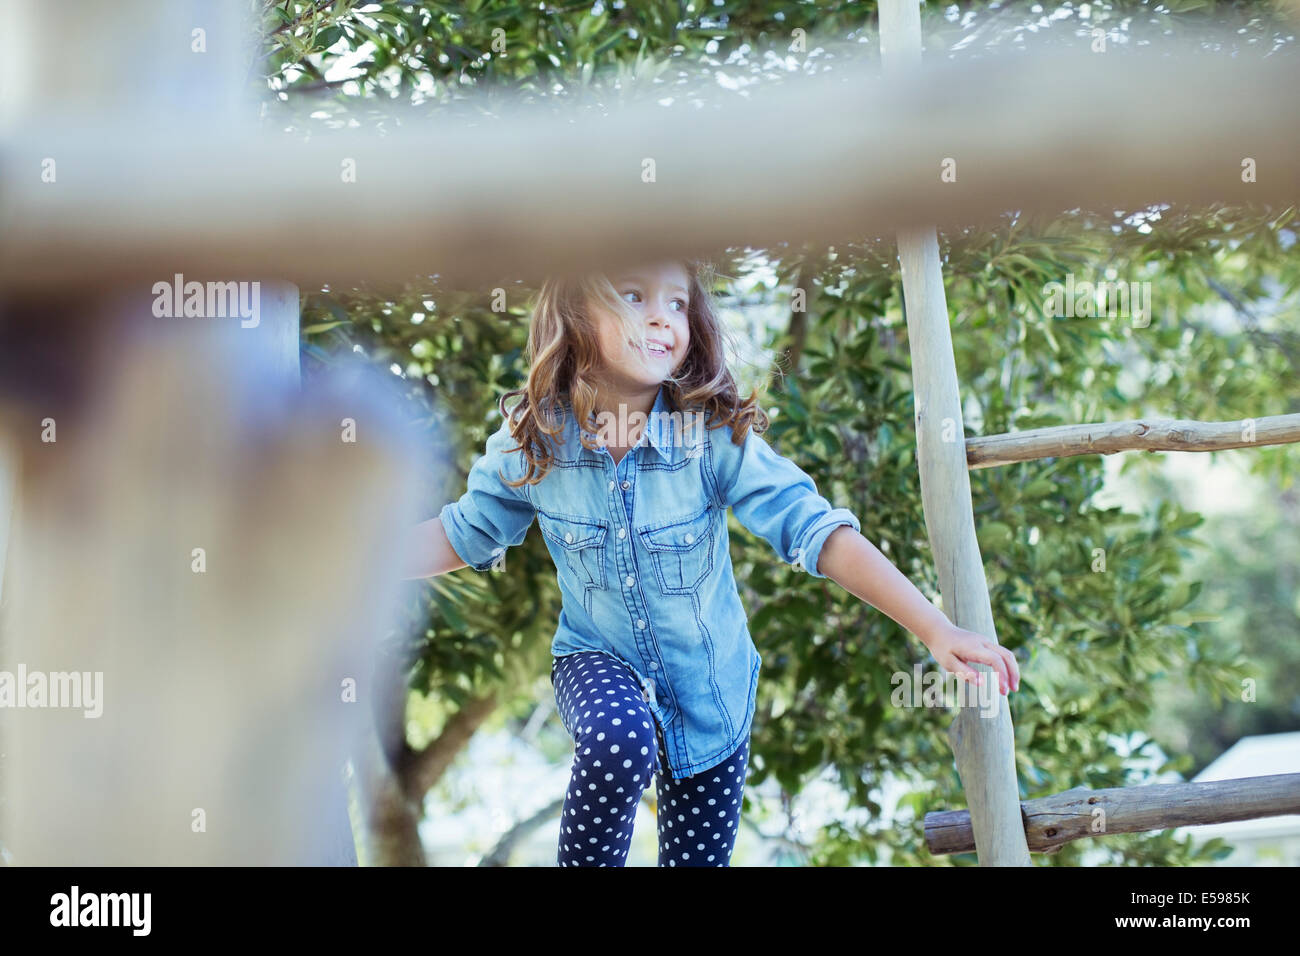 Girl climbing on play structure - Stock Image